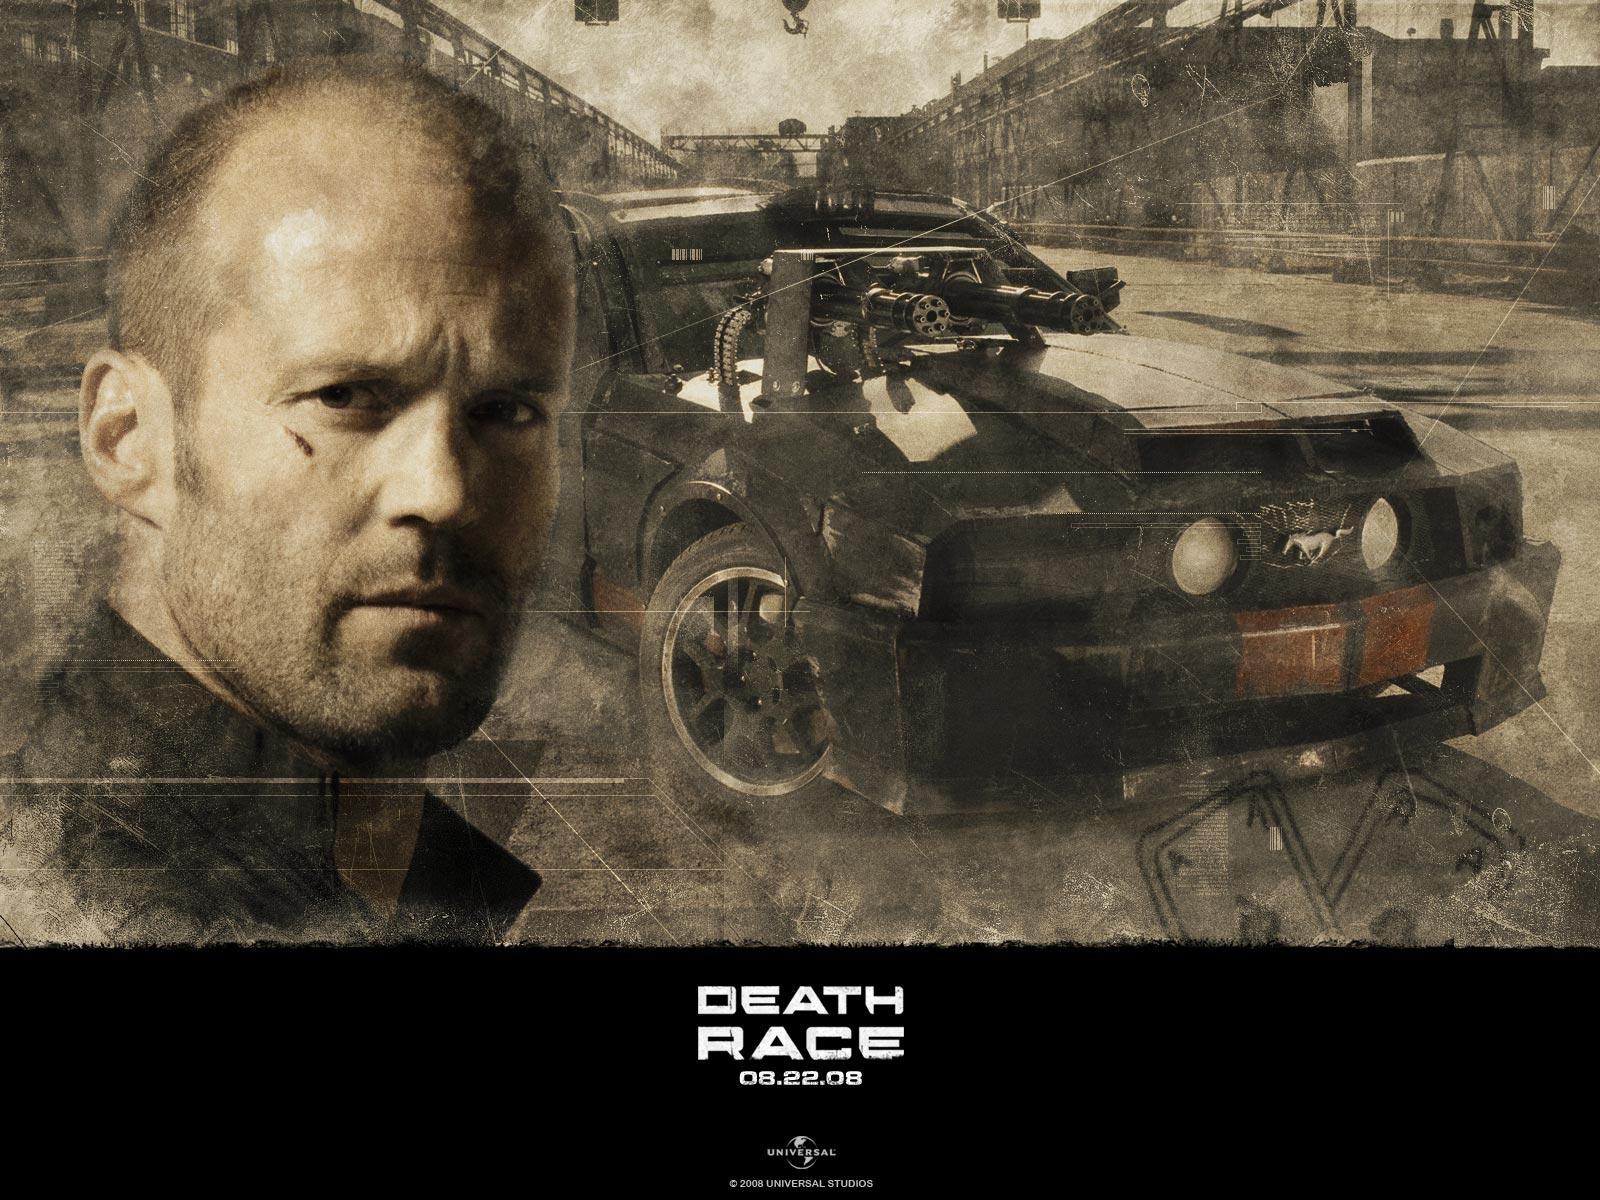 death race 006 | free desktop wallpapers for widescreen, hd and mobile